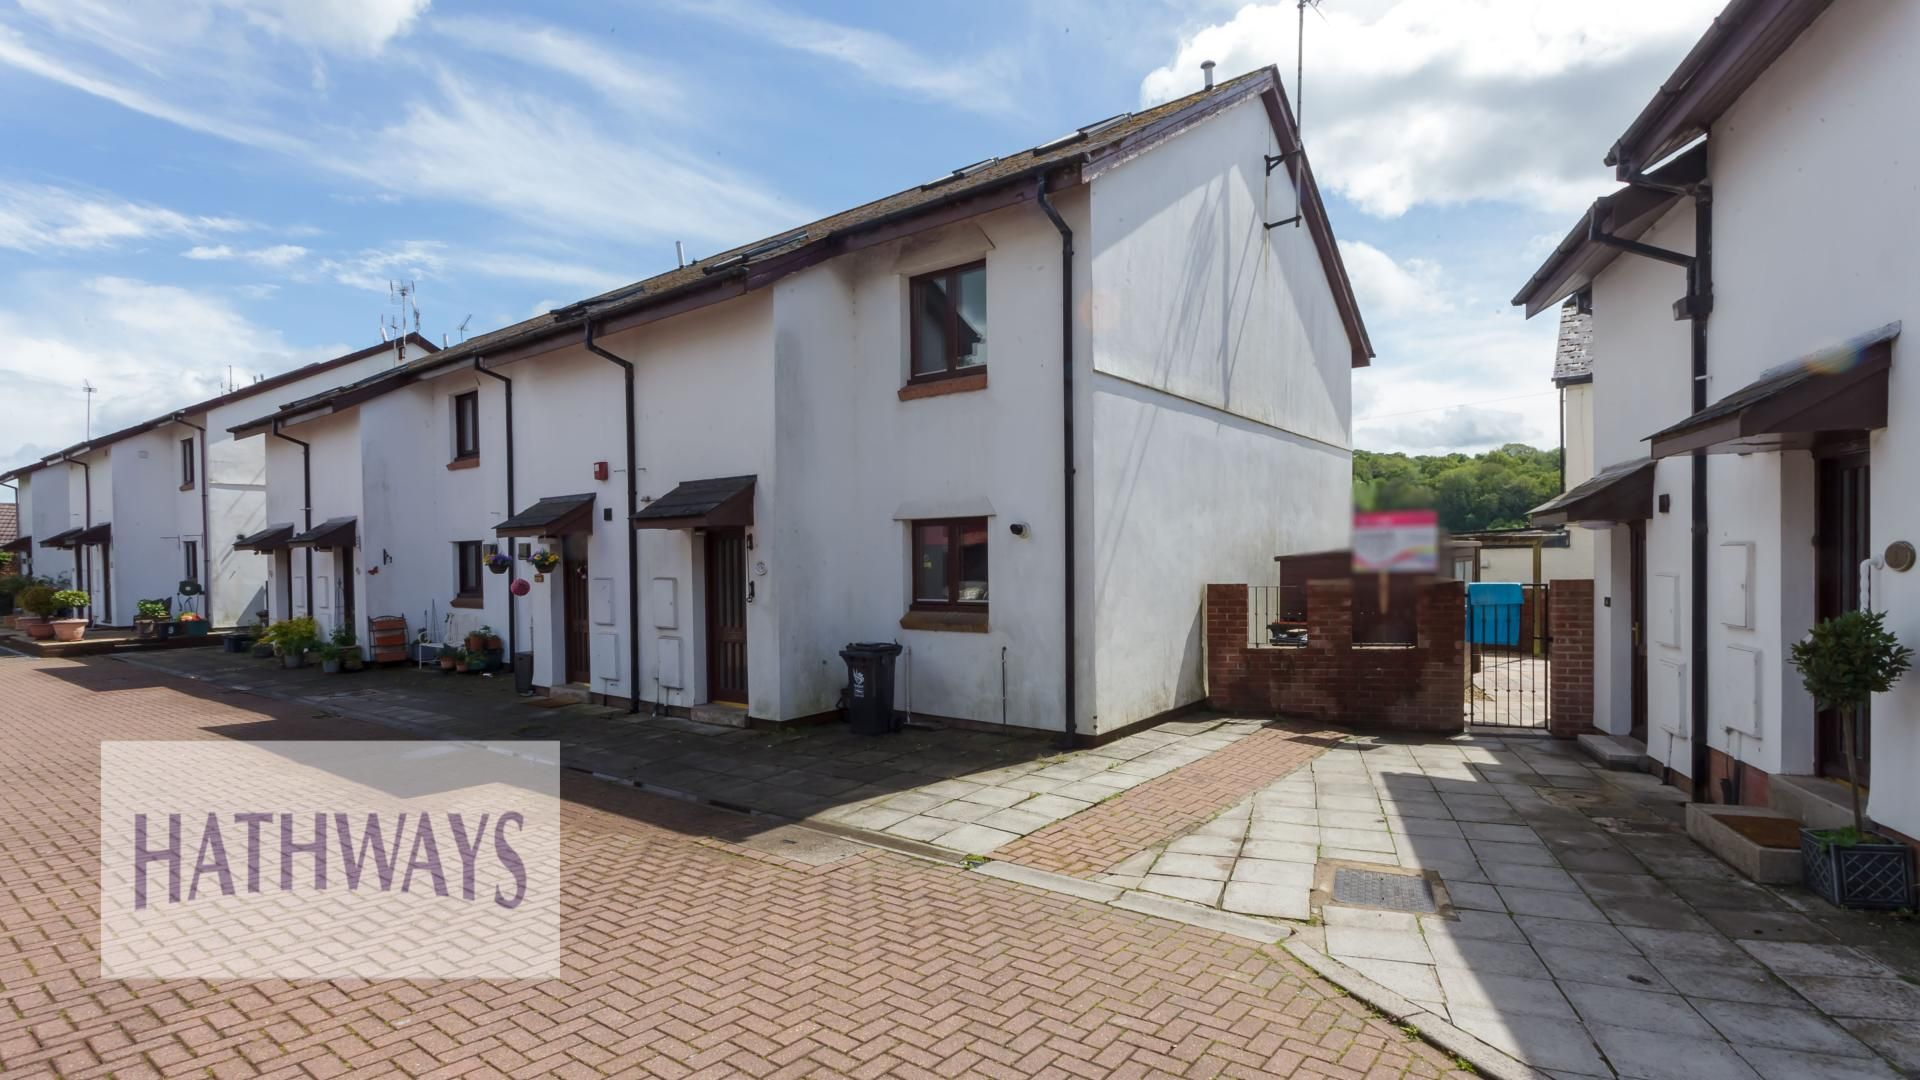 3 bed house for sale in Hanbury Close, NP18